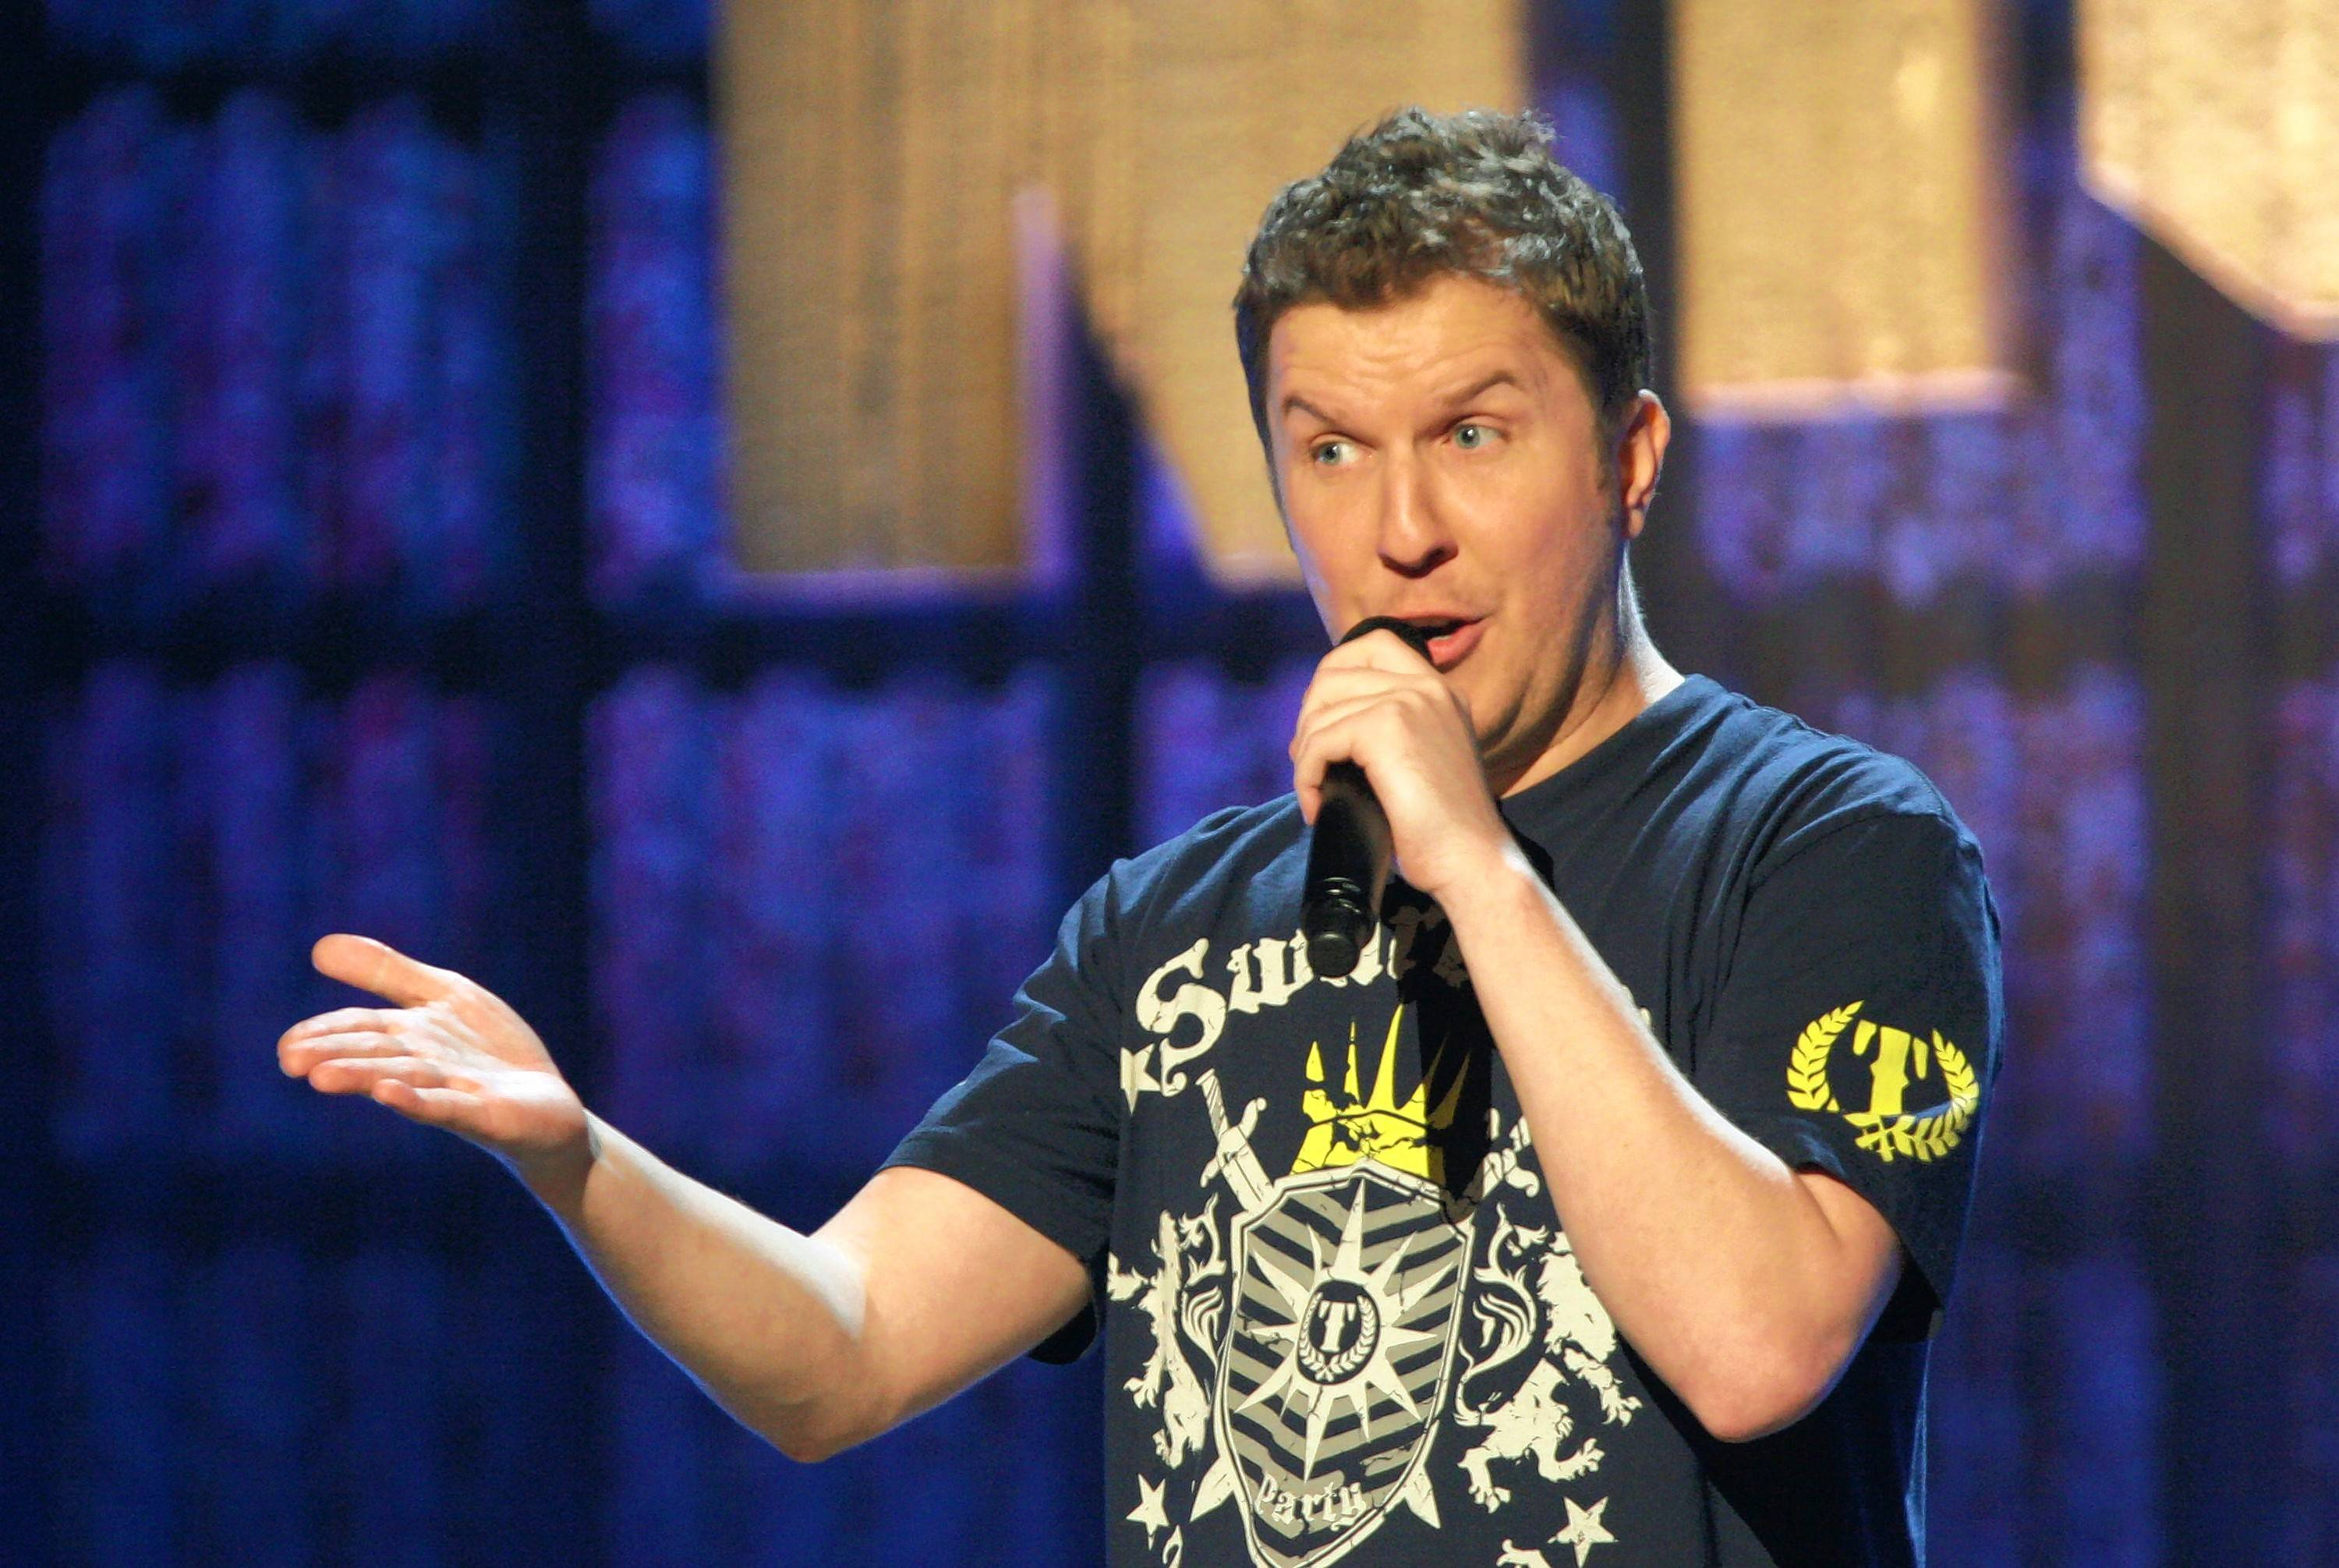 Comedian Nick Swardson performs at the Improv Comedy Showcase in Schaumburg.